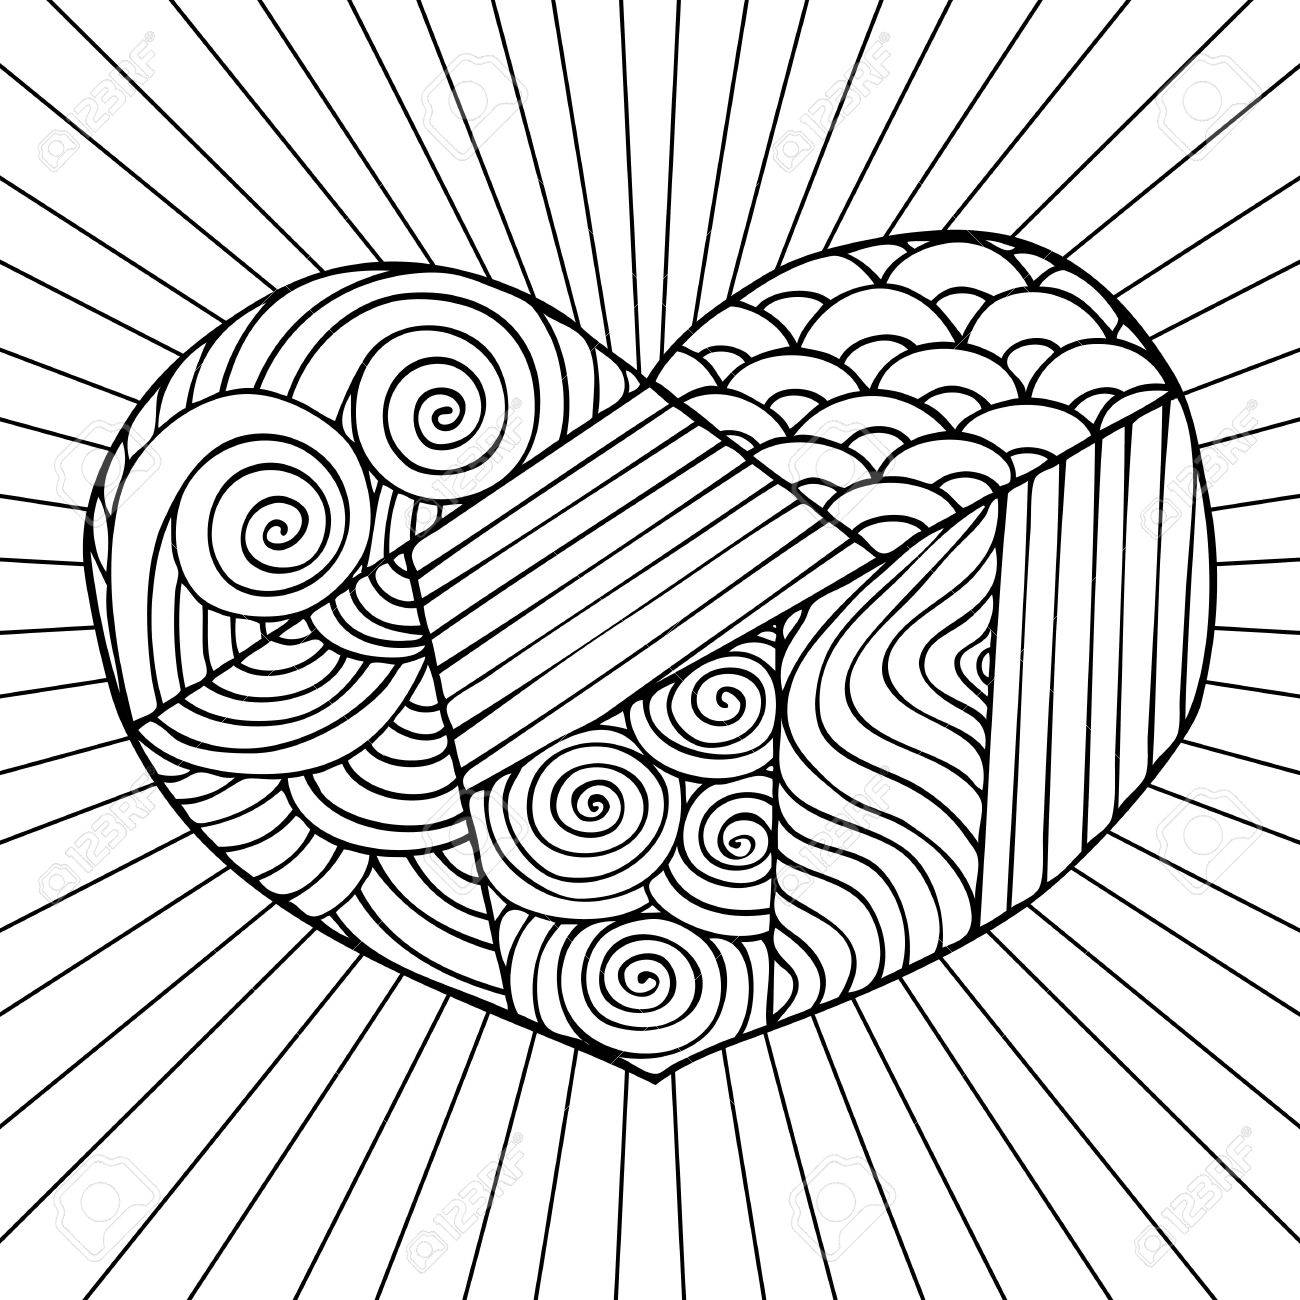 - Hand Drawn Heart. Adult Coloring Book Page Design With A Picture